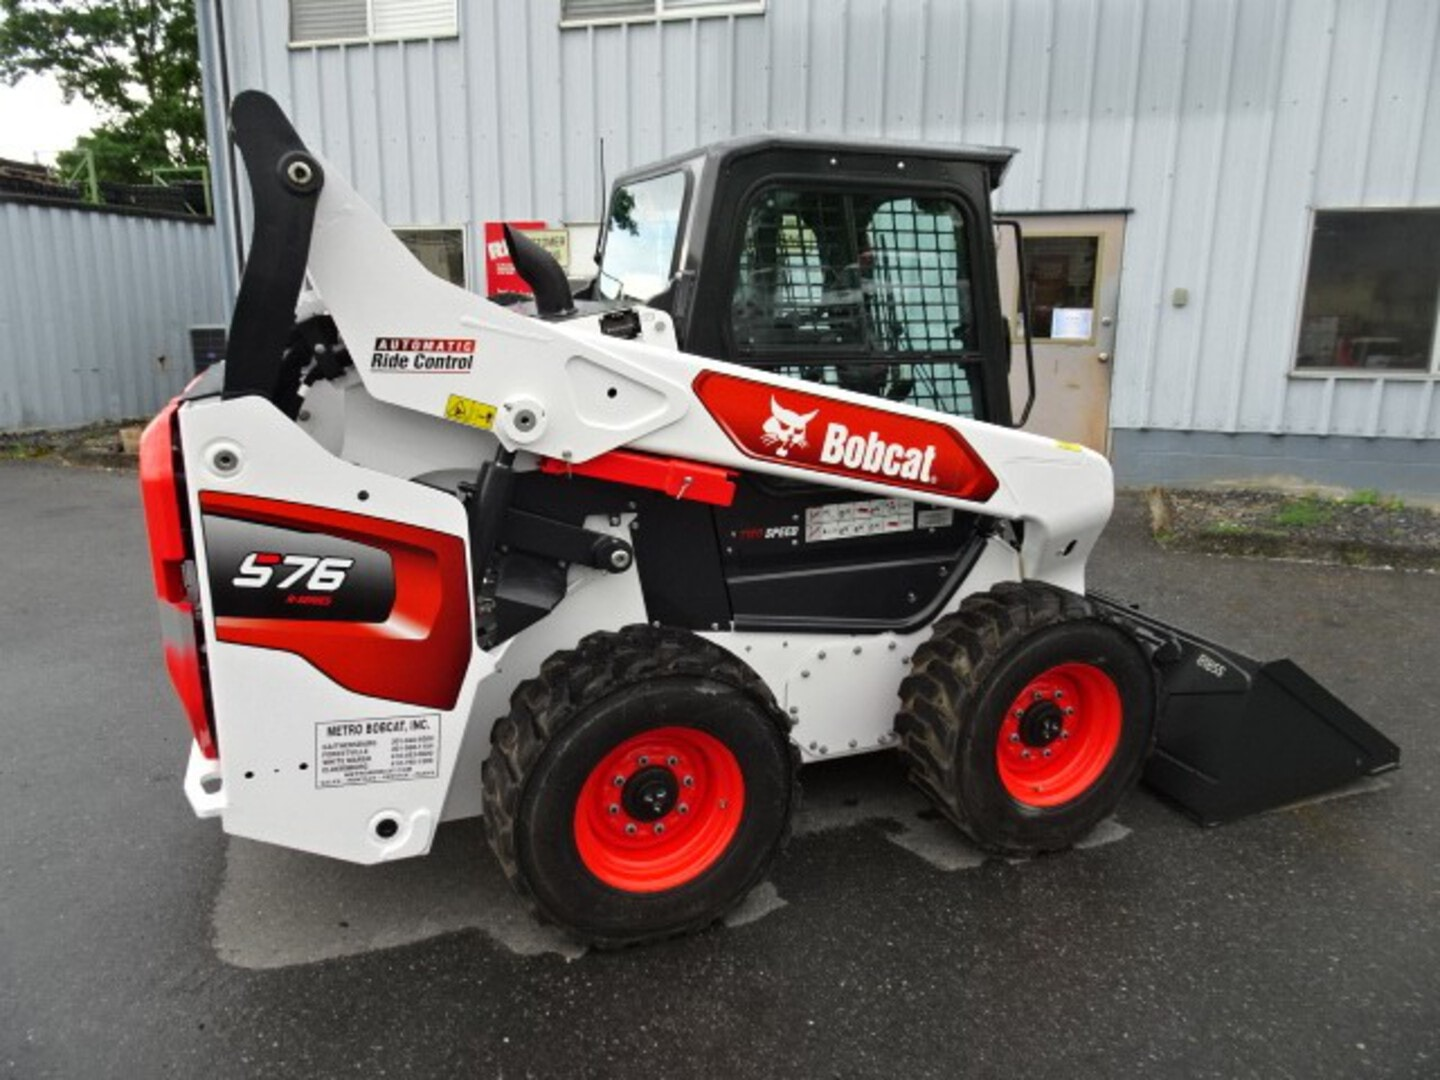 Used, 2021, Bobcat, S76 Skid-Steer Loader - $2300 CASH REBATE OR SPECIAL LOW RATE FINANCING AVAILABLE - C68 PACKAGE W/FEATURES ON DEMAND - SJC CONTROLS - 125 HOURS, Skid Steers